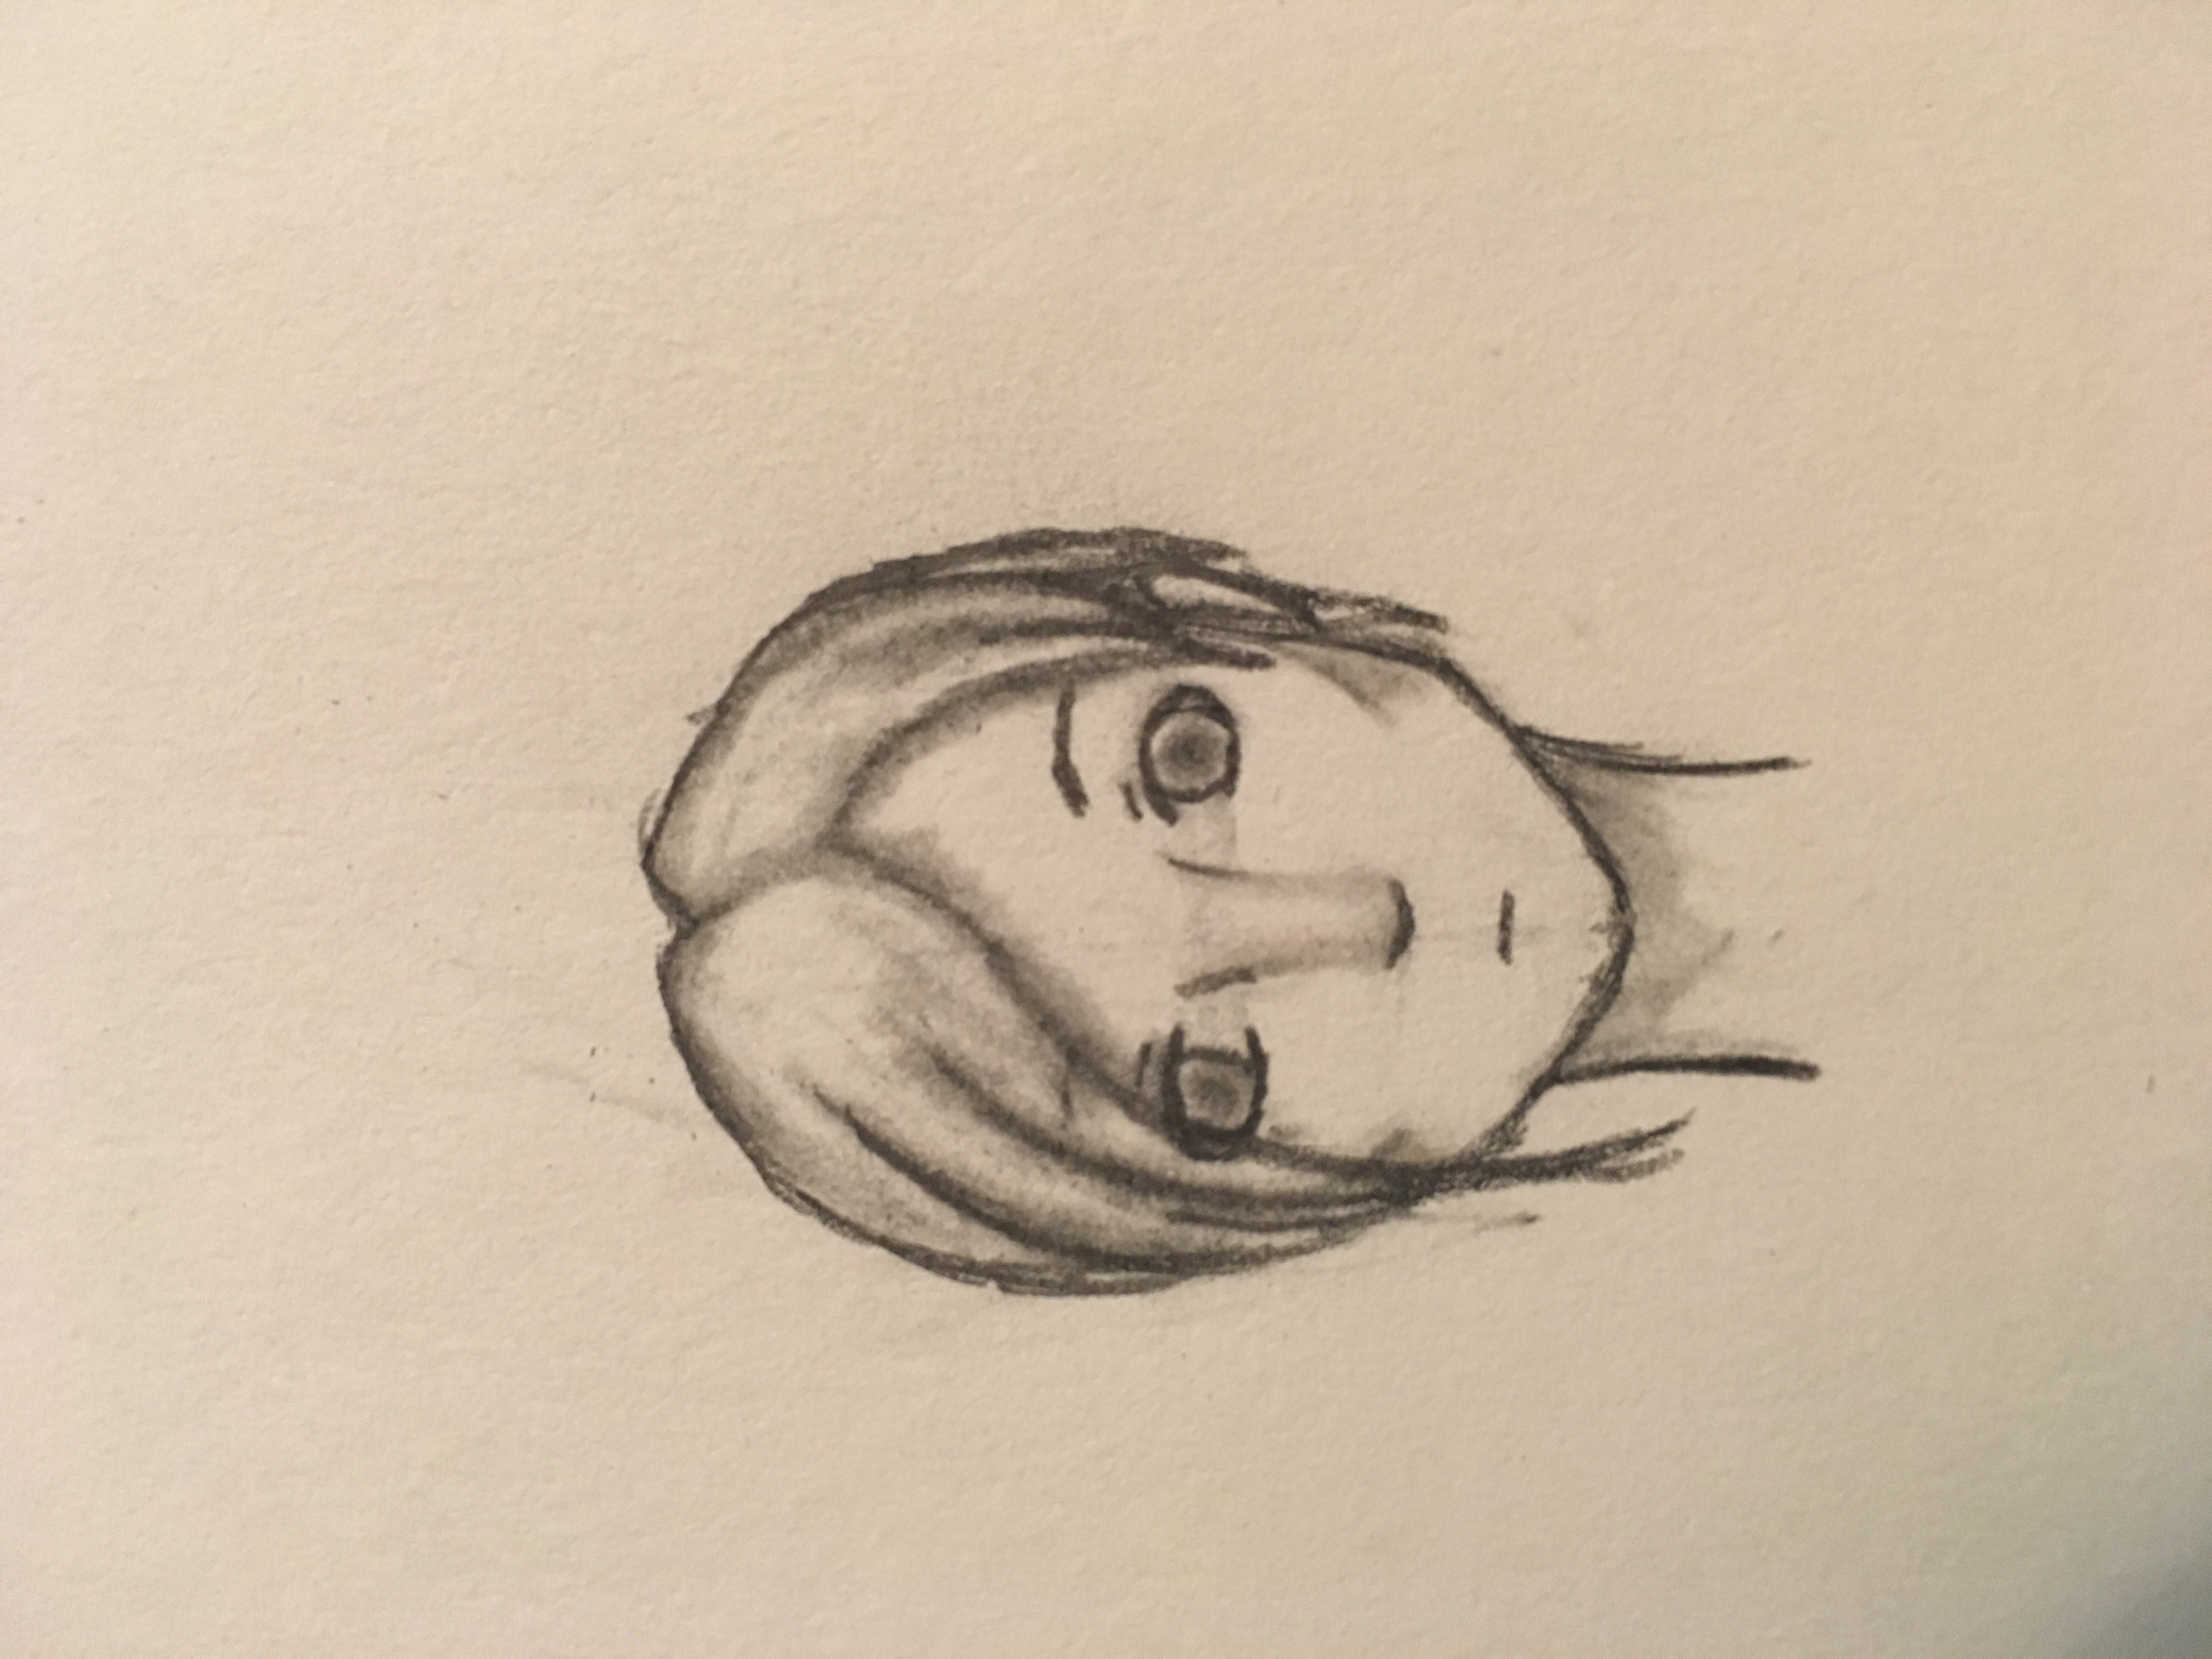 My attempt at shading